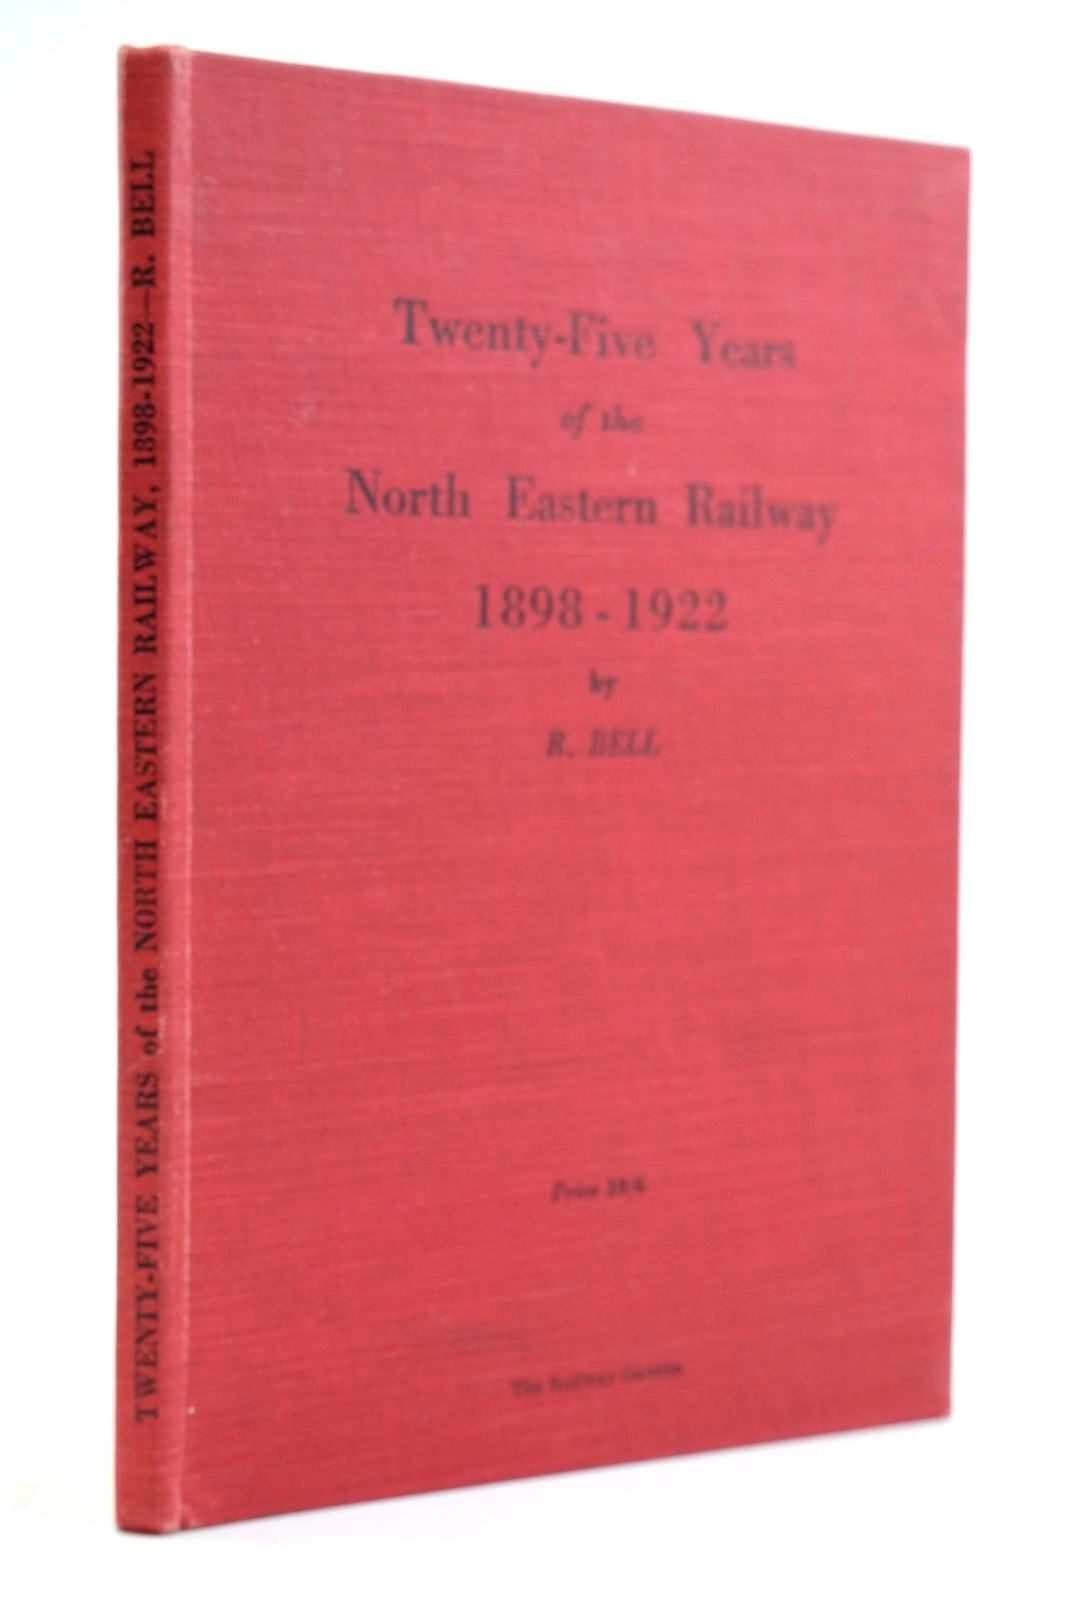 Photo of TWENTY FIVE YEARS OF THE NORTH EASTERN RAILWAY 1898-1922- Stock Number: 2134032